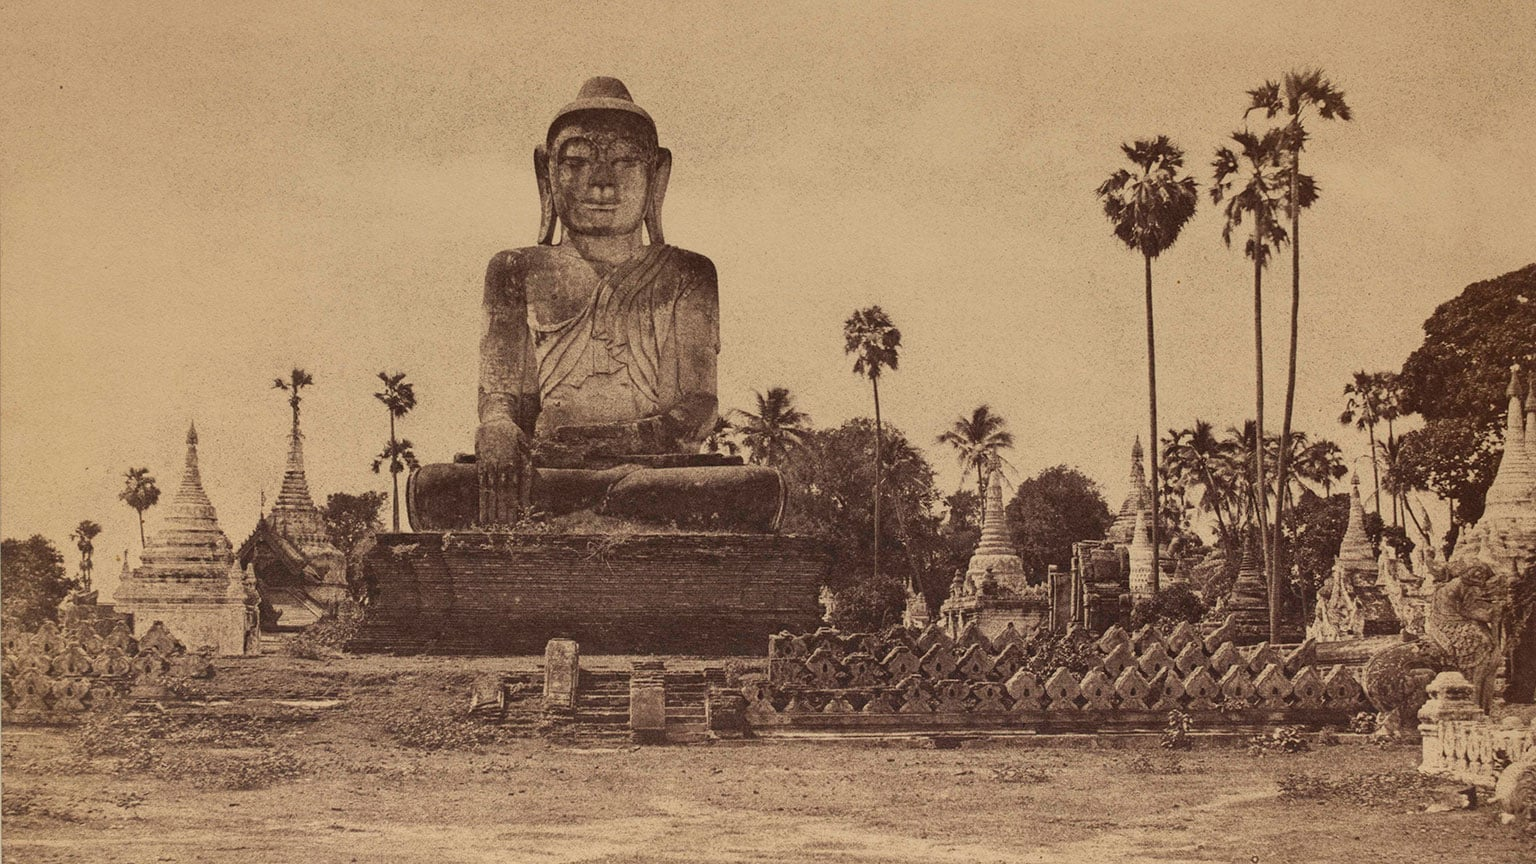 2. Captain Linneaus Tripe: Photographer of India and Burma 1854-1860, Victoria and Albert Museum, Free entry to all - Captain Linneaus Tripe, Colossal Statue of the Guatama ,1855, Victoria and Albert Museum, London